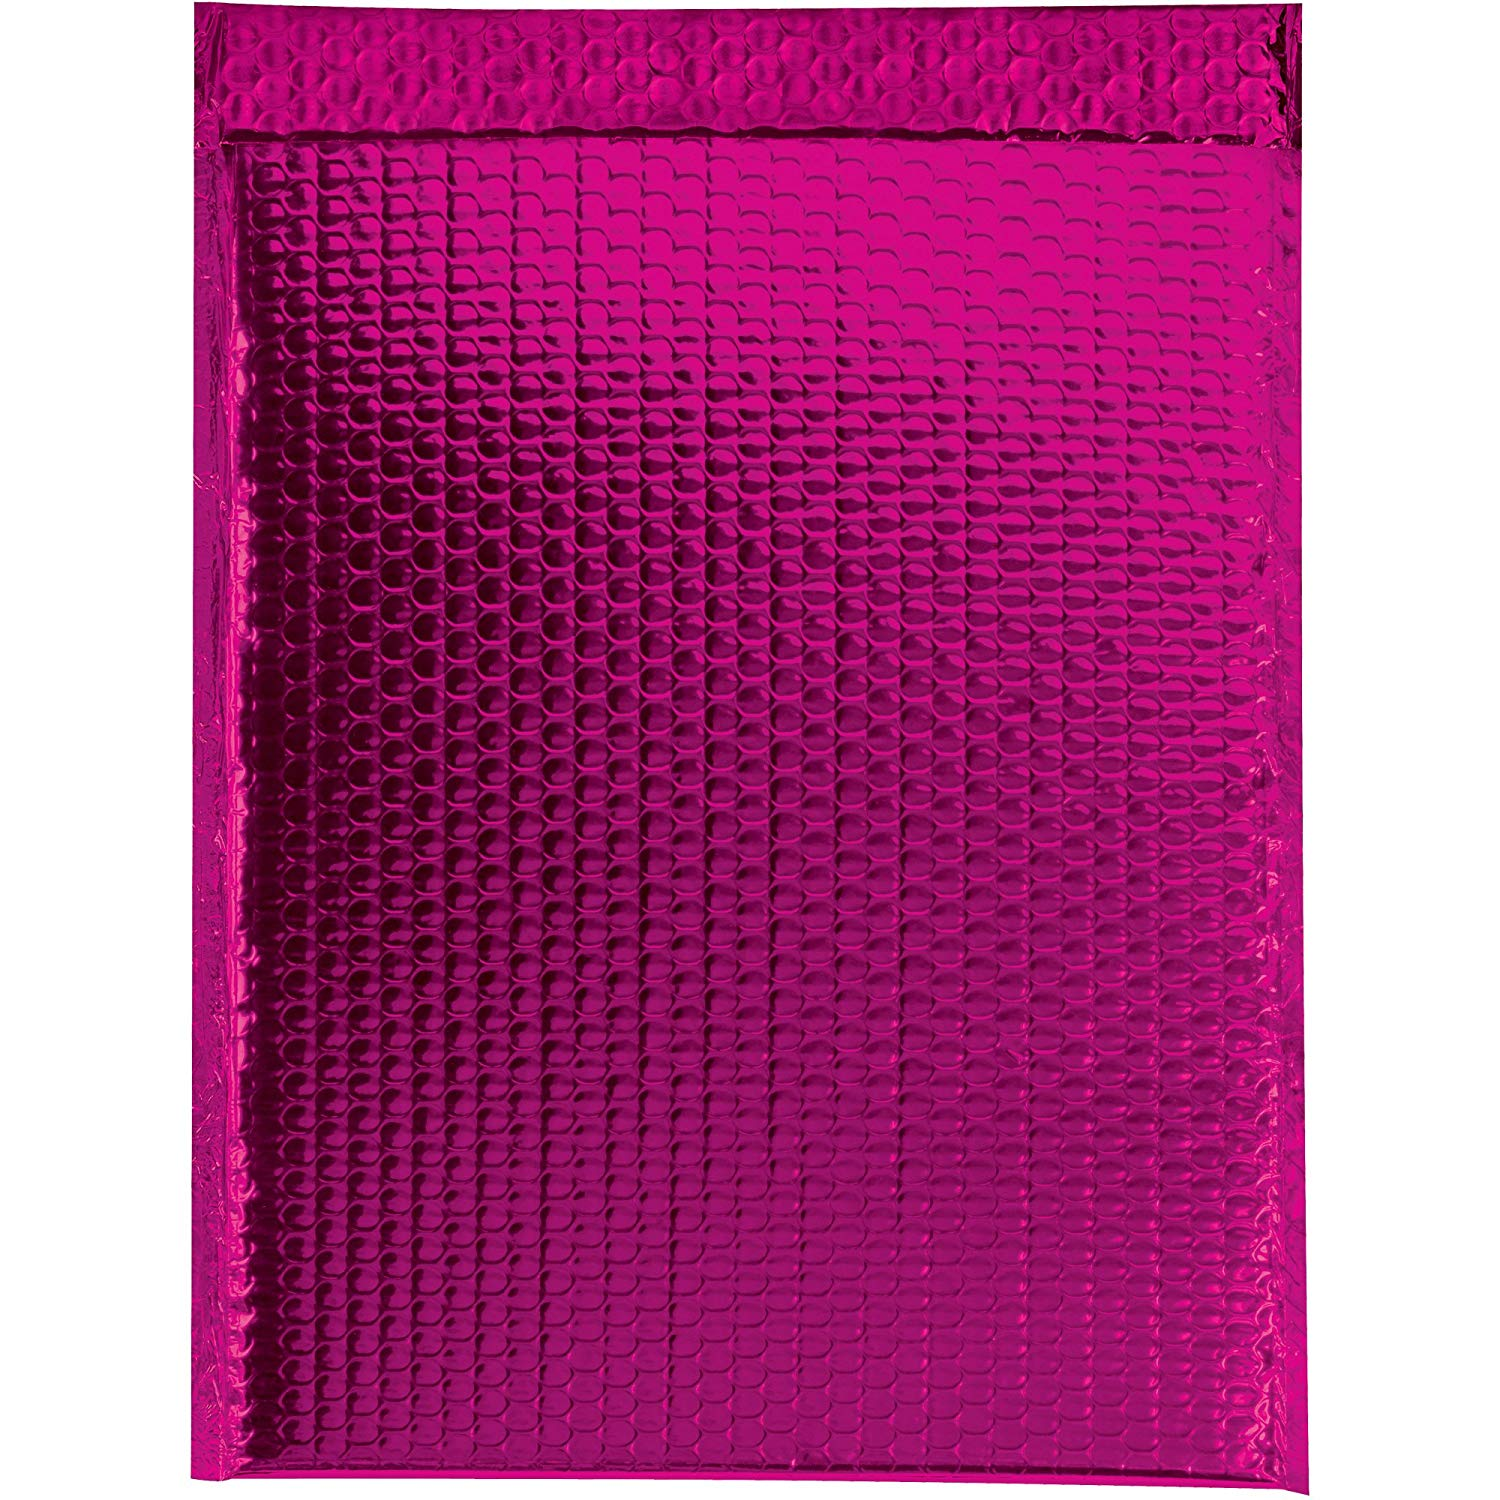 "Boxes Fast BFGBM1317PK Glamour Bubble Mailers, 13"" x 17 1/2"", Pink (Pack of 100)"